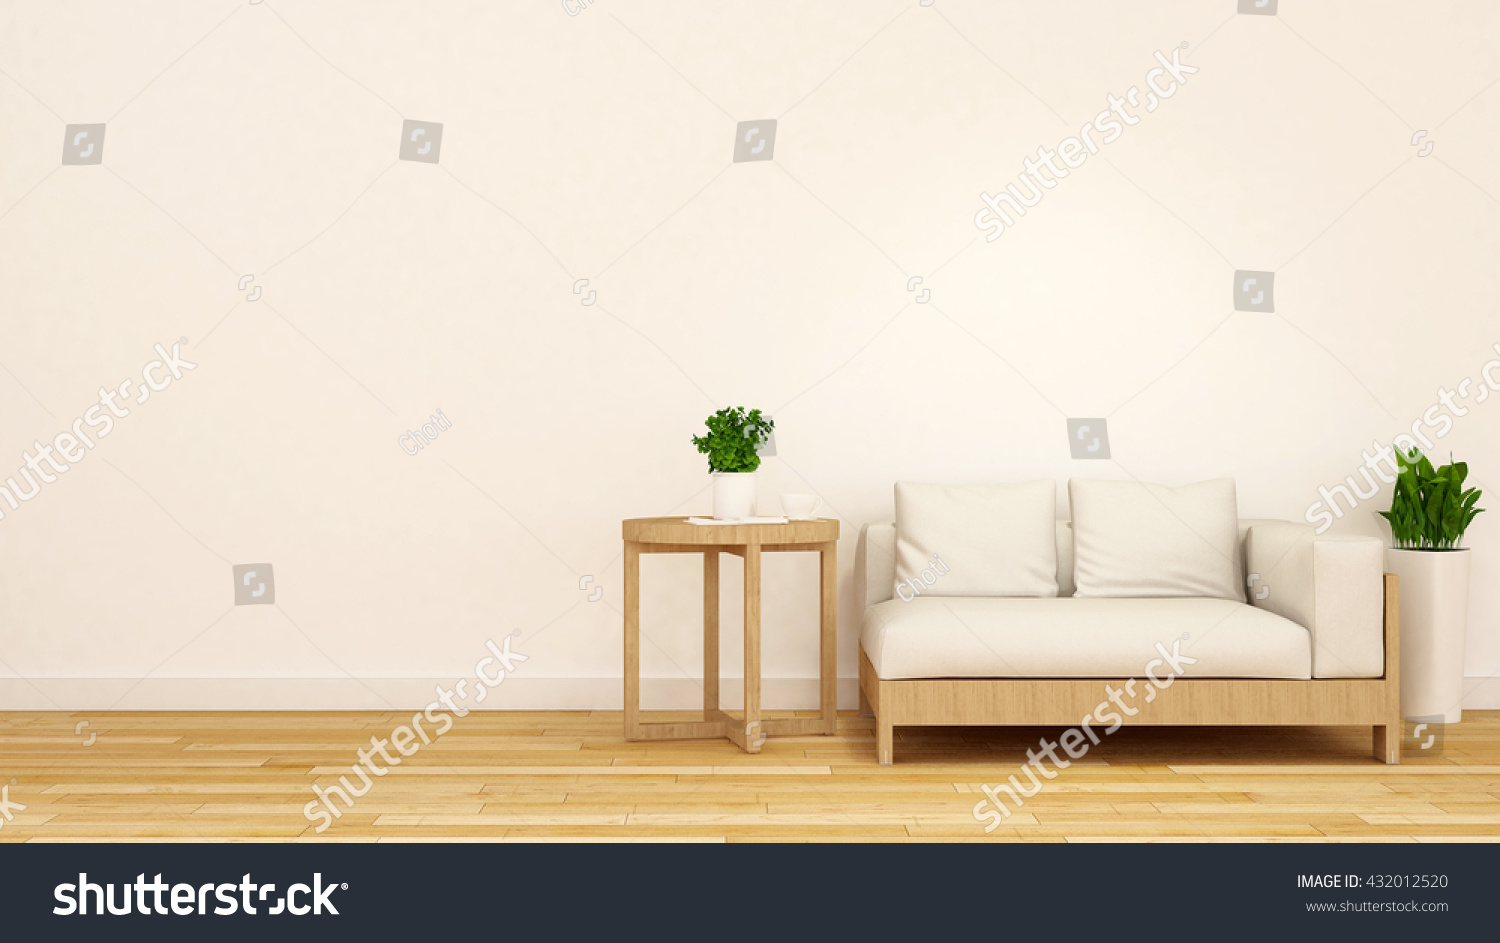 Wooden white sofa coffee table plant3d stock illustration for Sofa table for plants